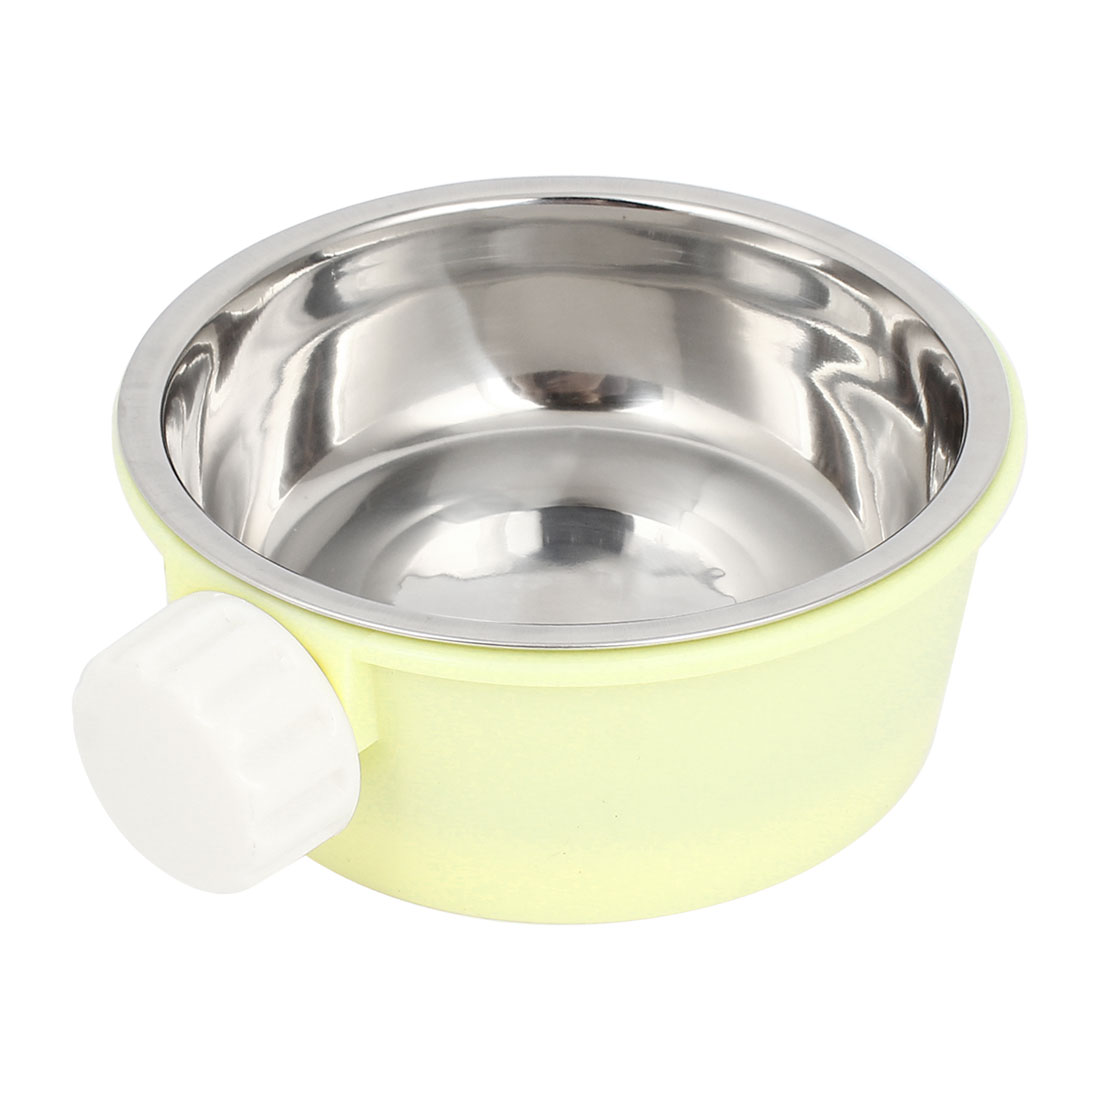 2 in 1 Round Pet Dog imitated rabbit Food Water Feed Fixed Bowl Dish Light Yellow